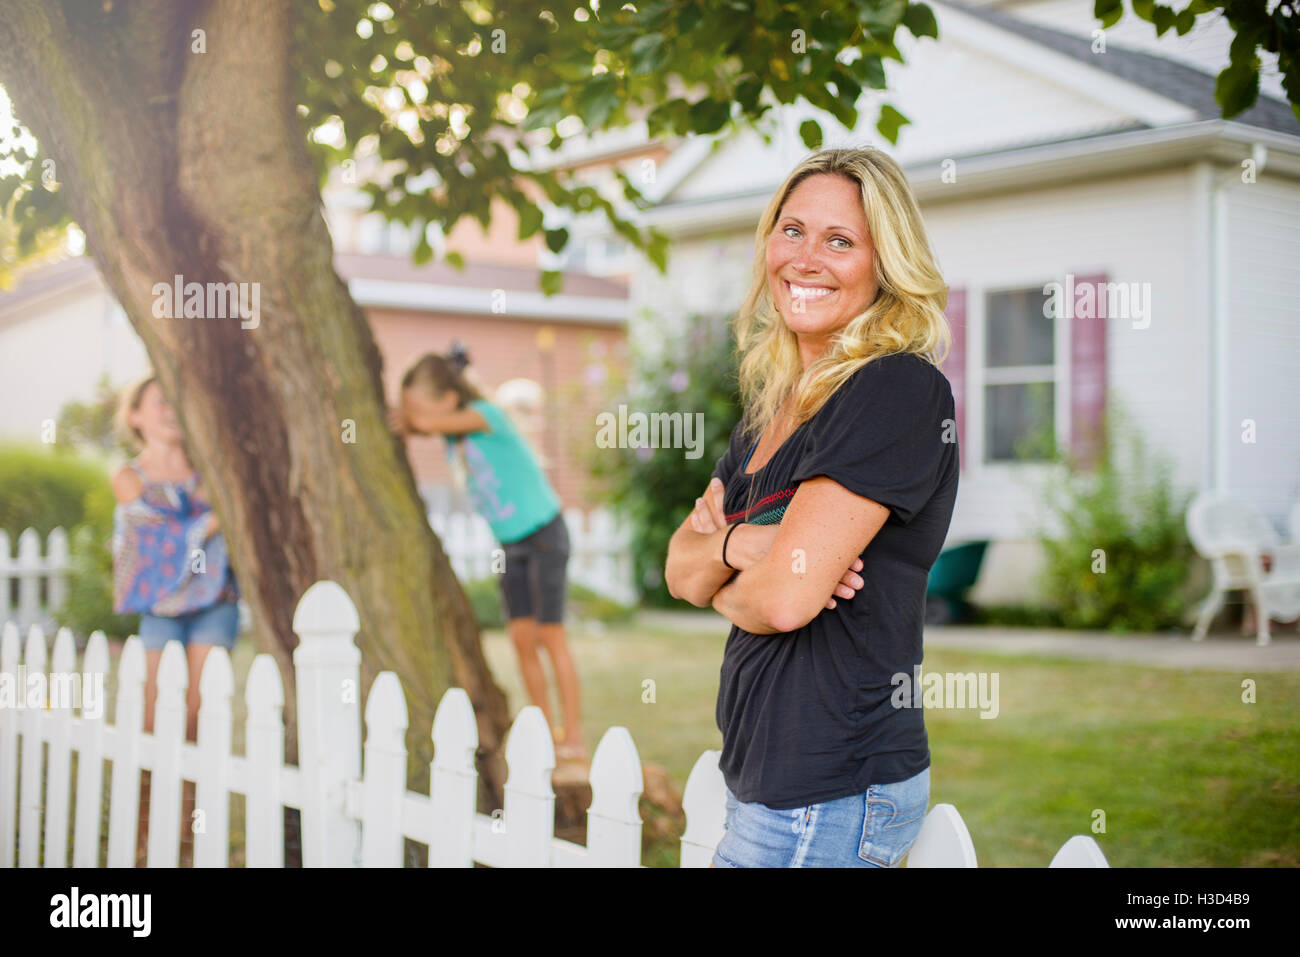 Happy woman looking away while children playing hide and seek in backyard - Stock Image